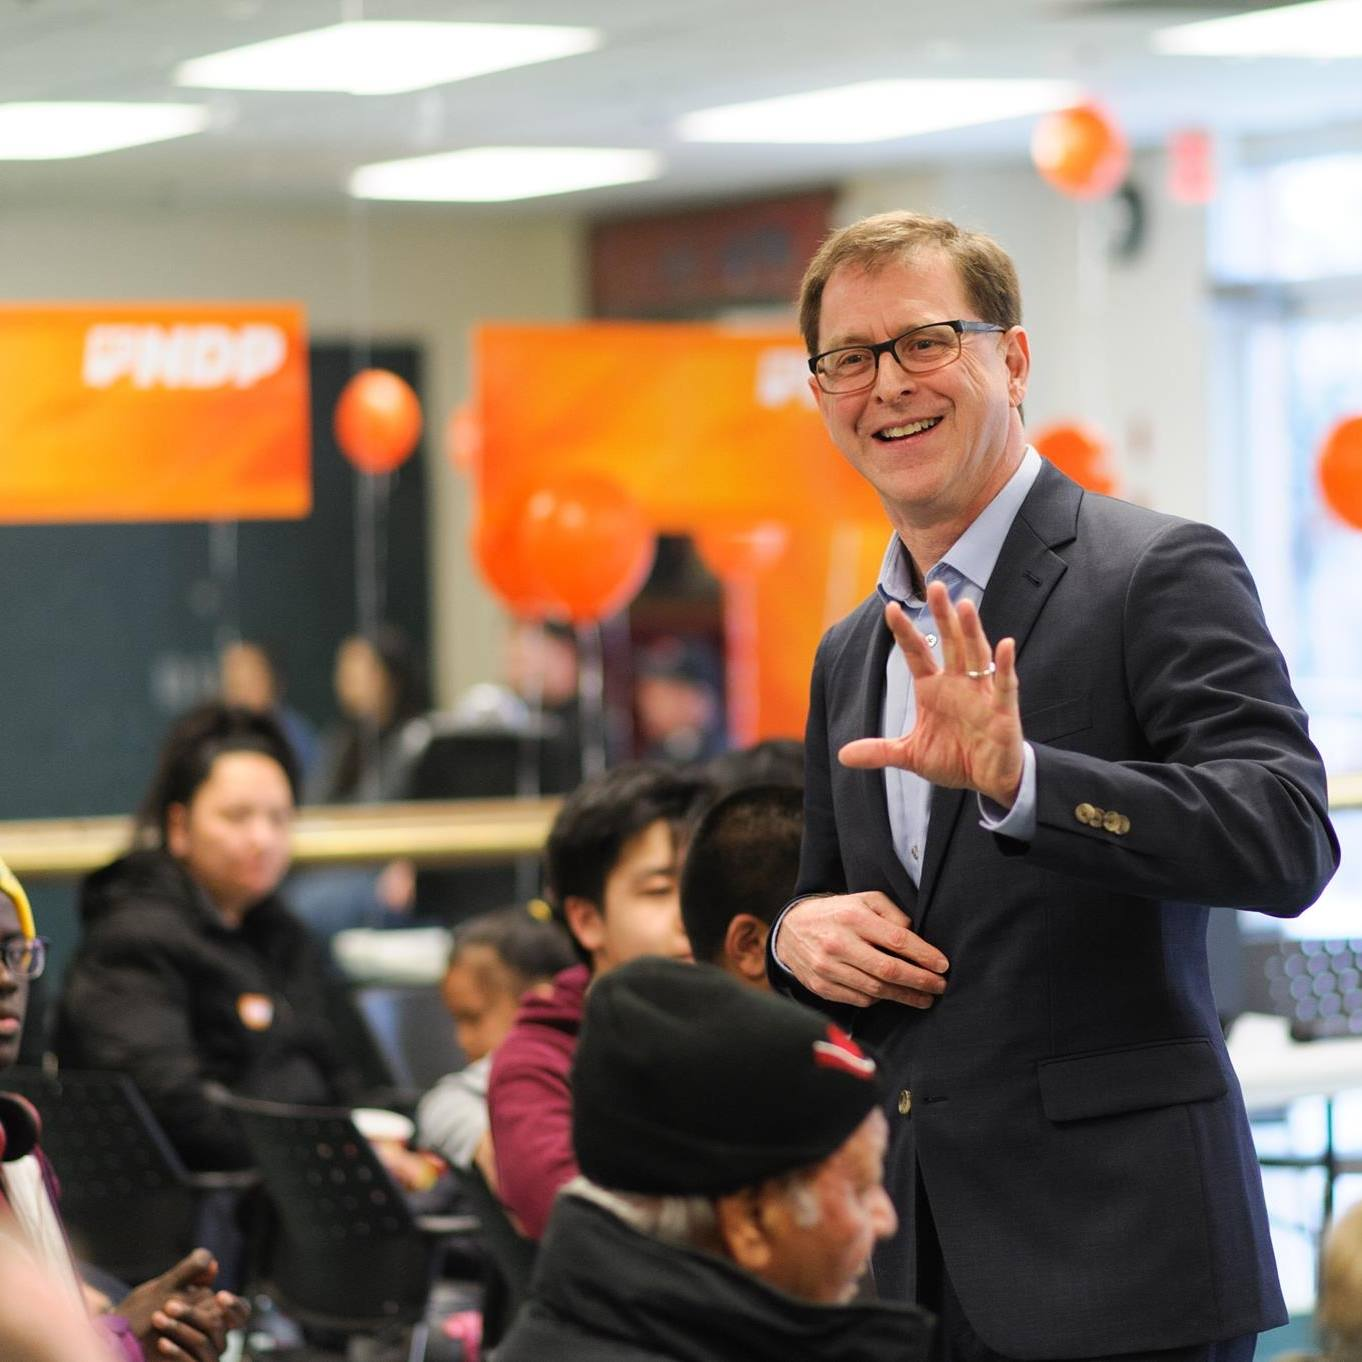 The British Columbia government says it will pay for a drug that costs $700,000 a year for some sufferers of a rare disease. Health Minister Adrian Dix said Monday his ministry will assess whether to cover the medication on a case-by-case basis. (Photo: Adrian Dix/Facebook)